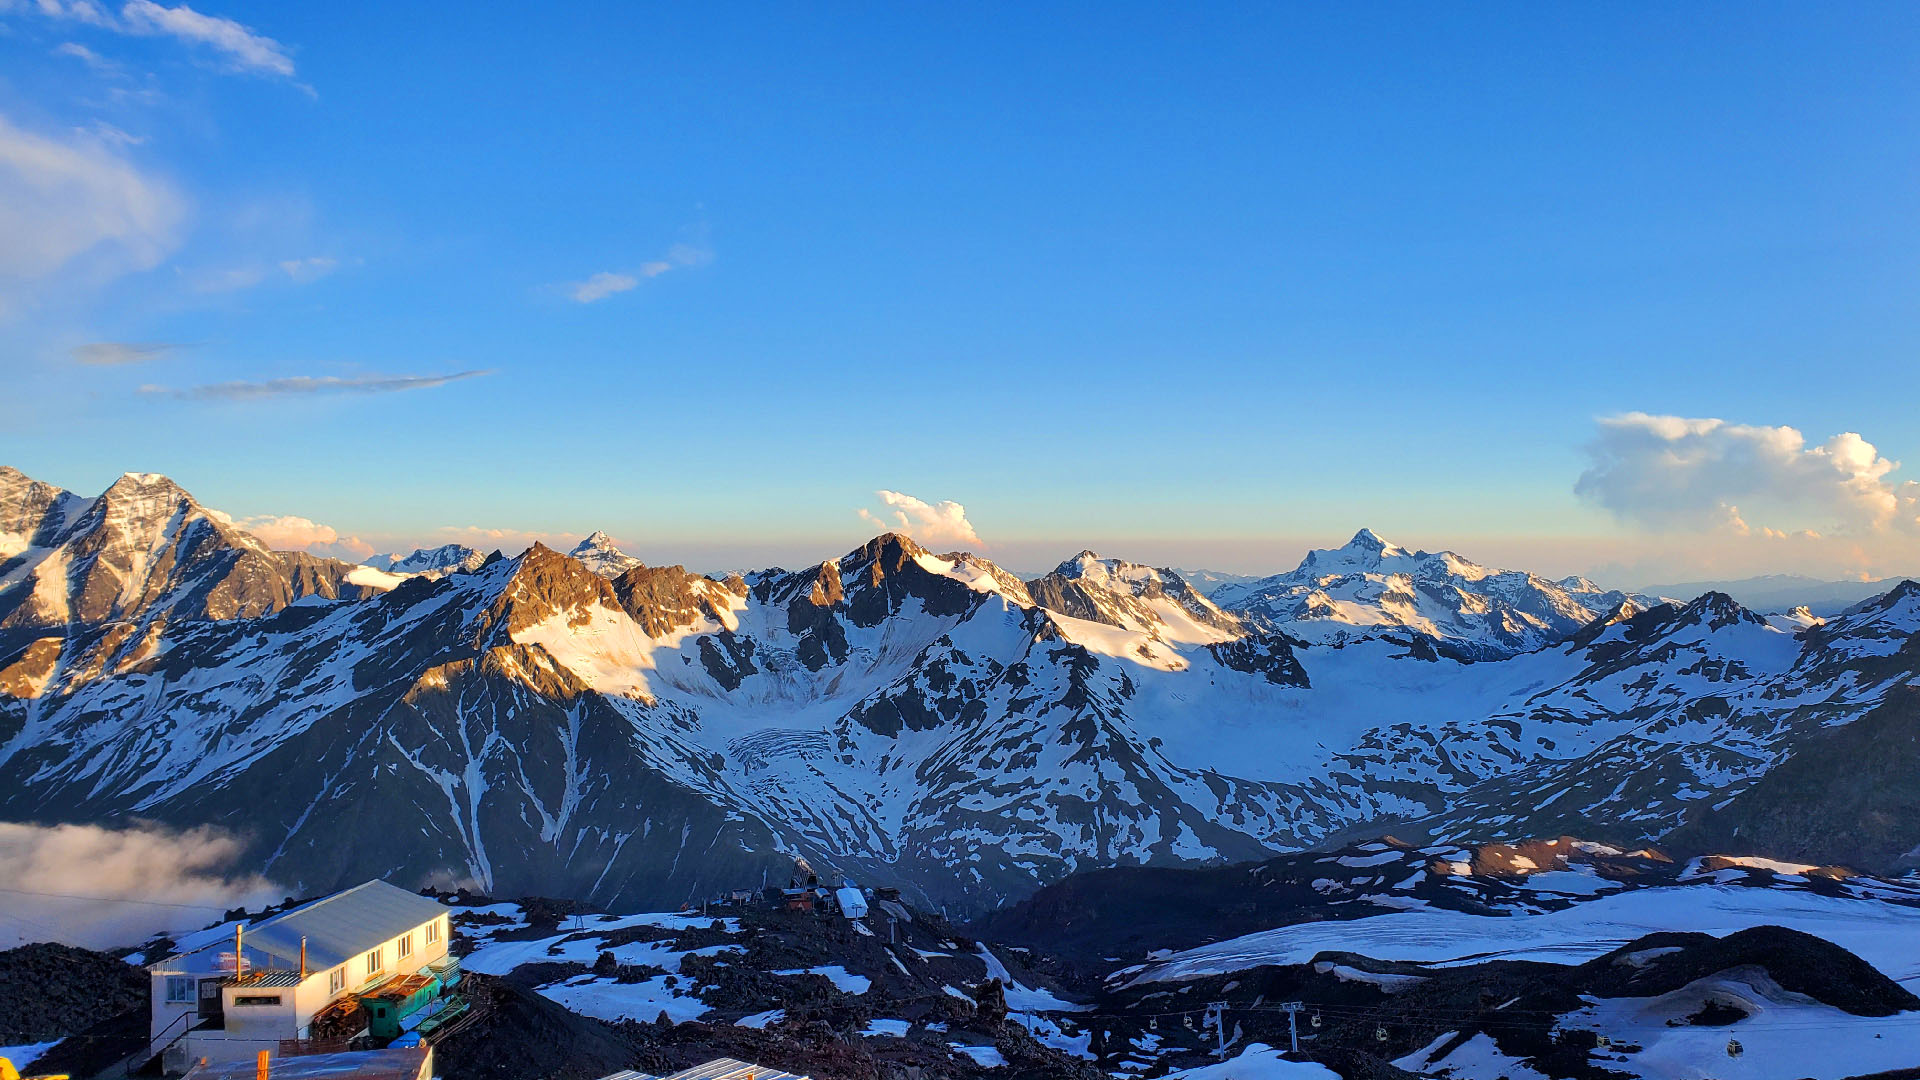 Panoramic photo of Mt. Elbrus